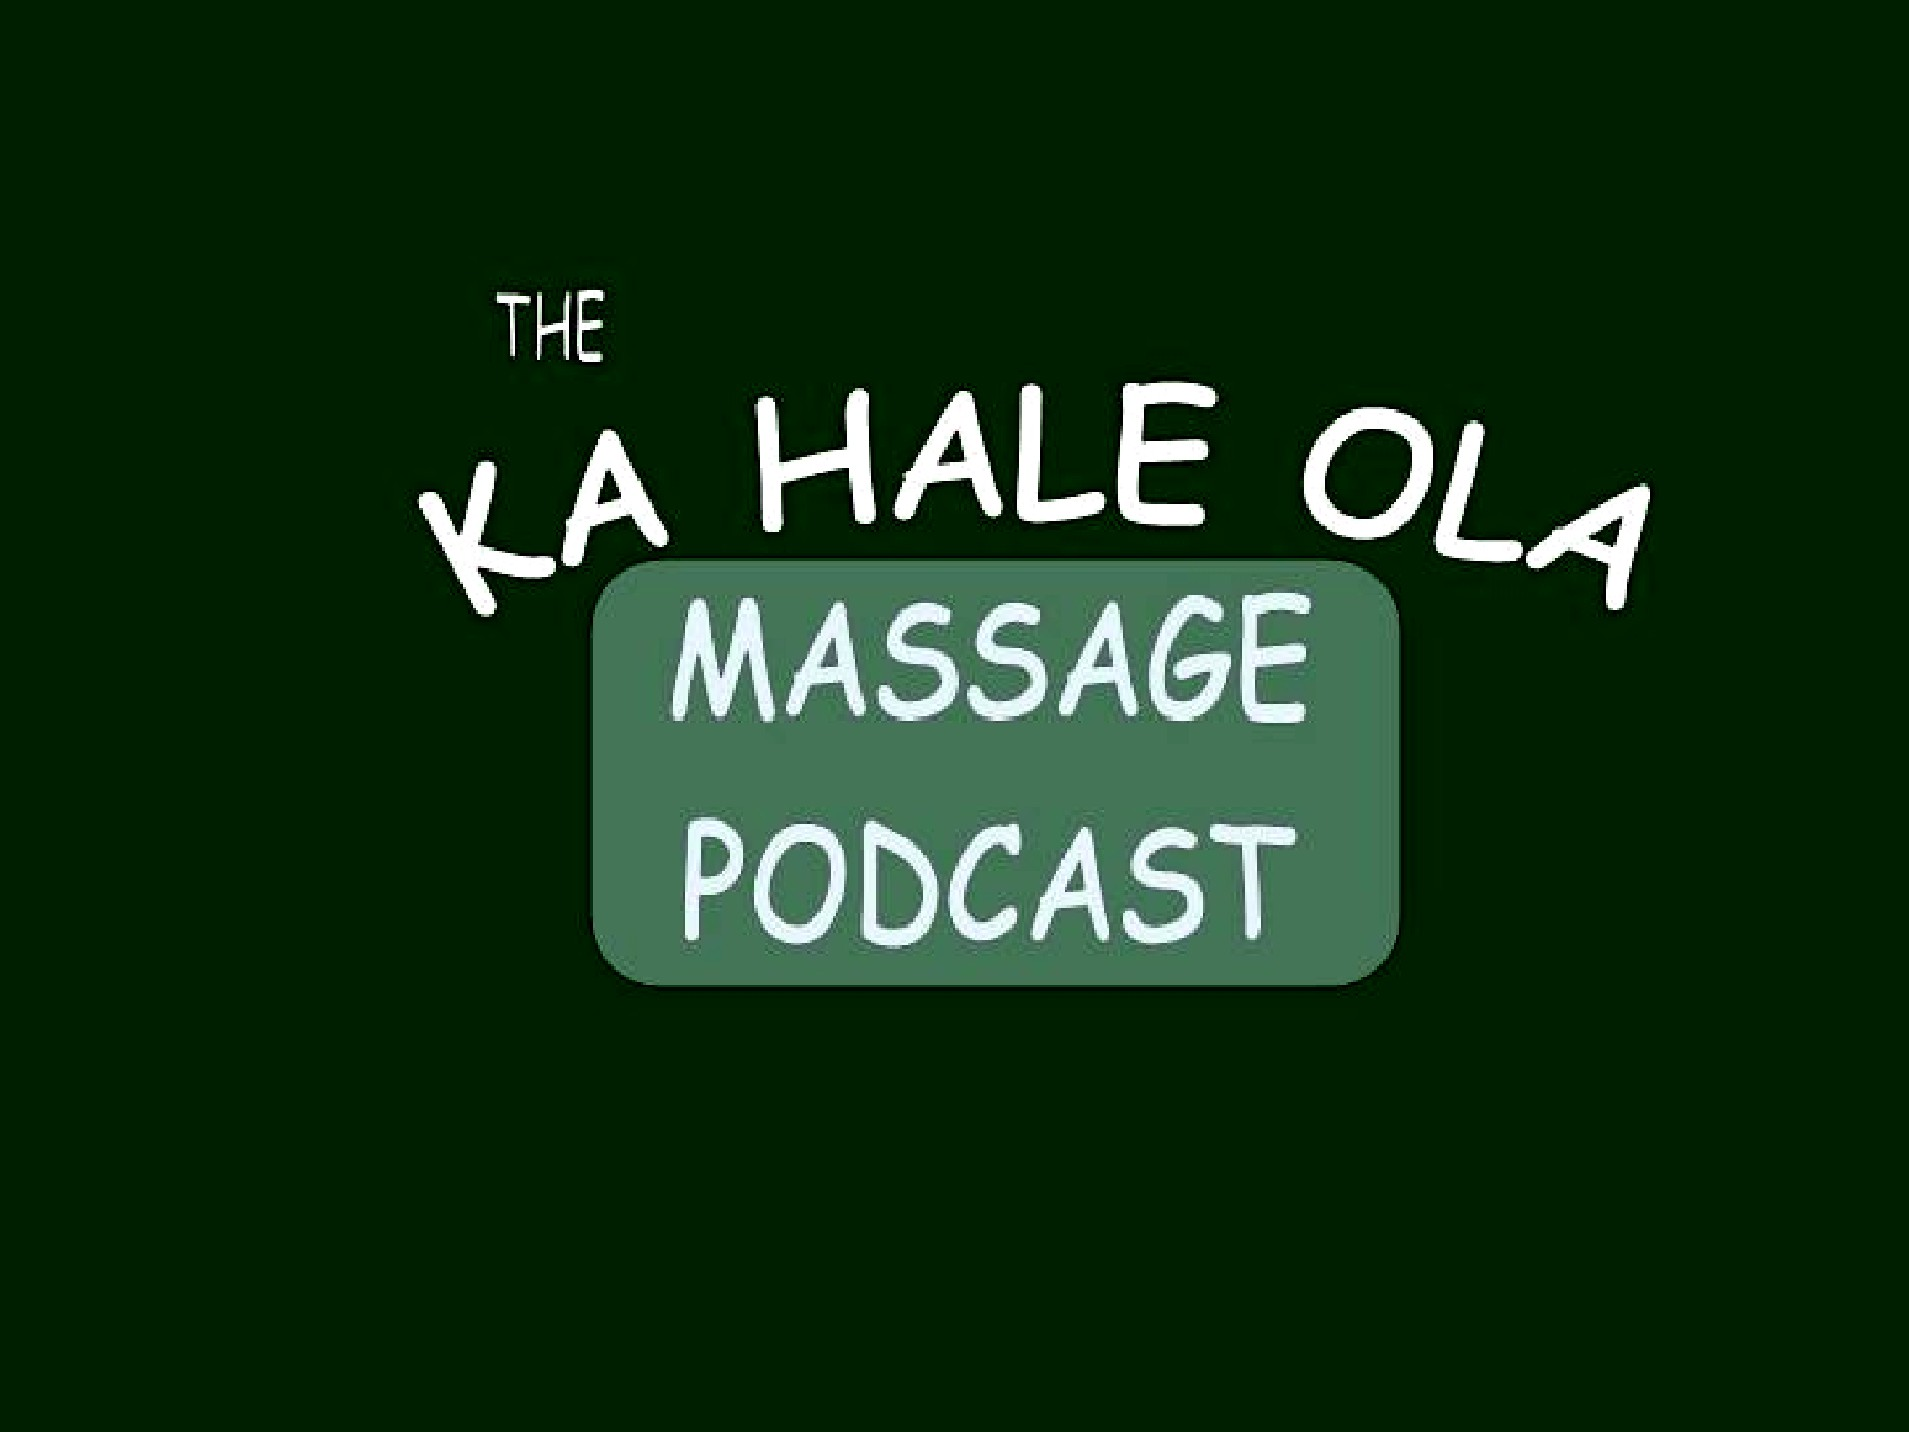 Ka Hale Ola Massage Podcast